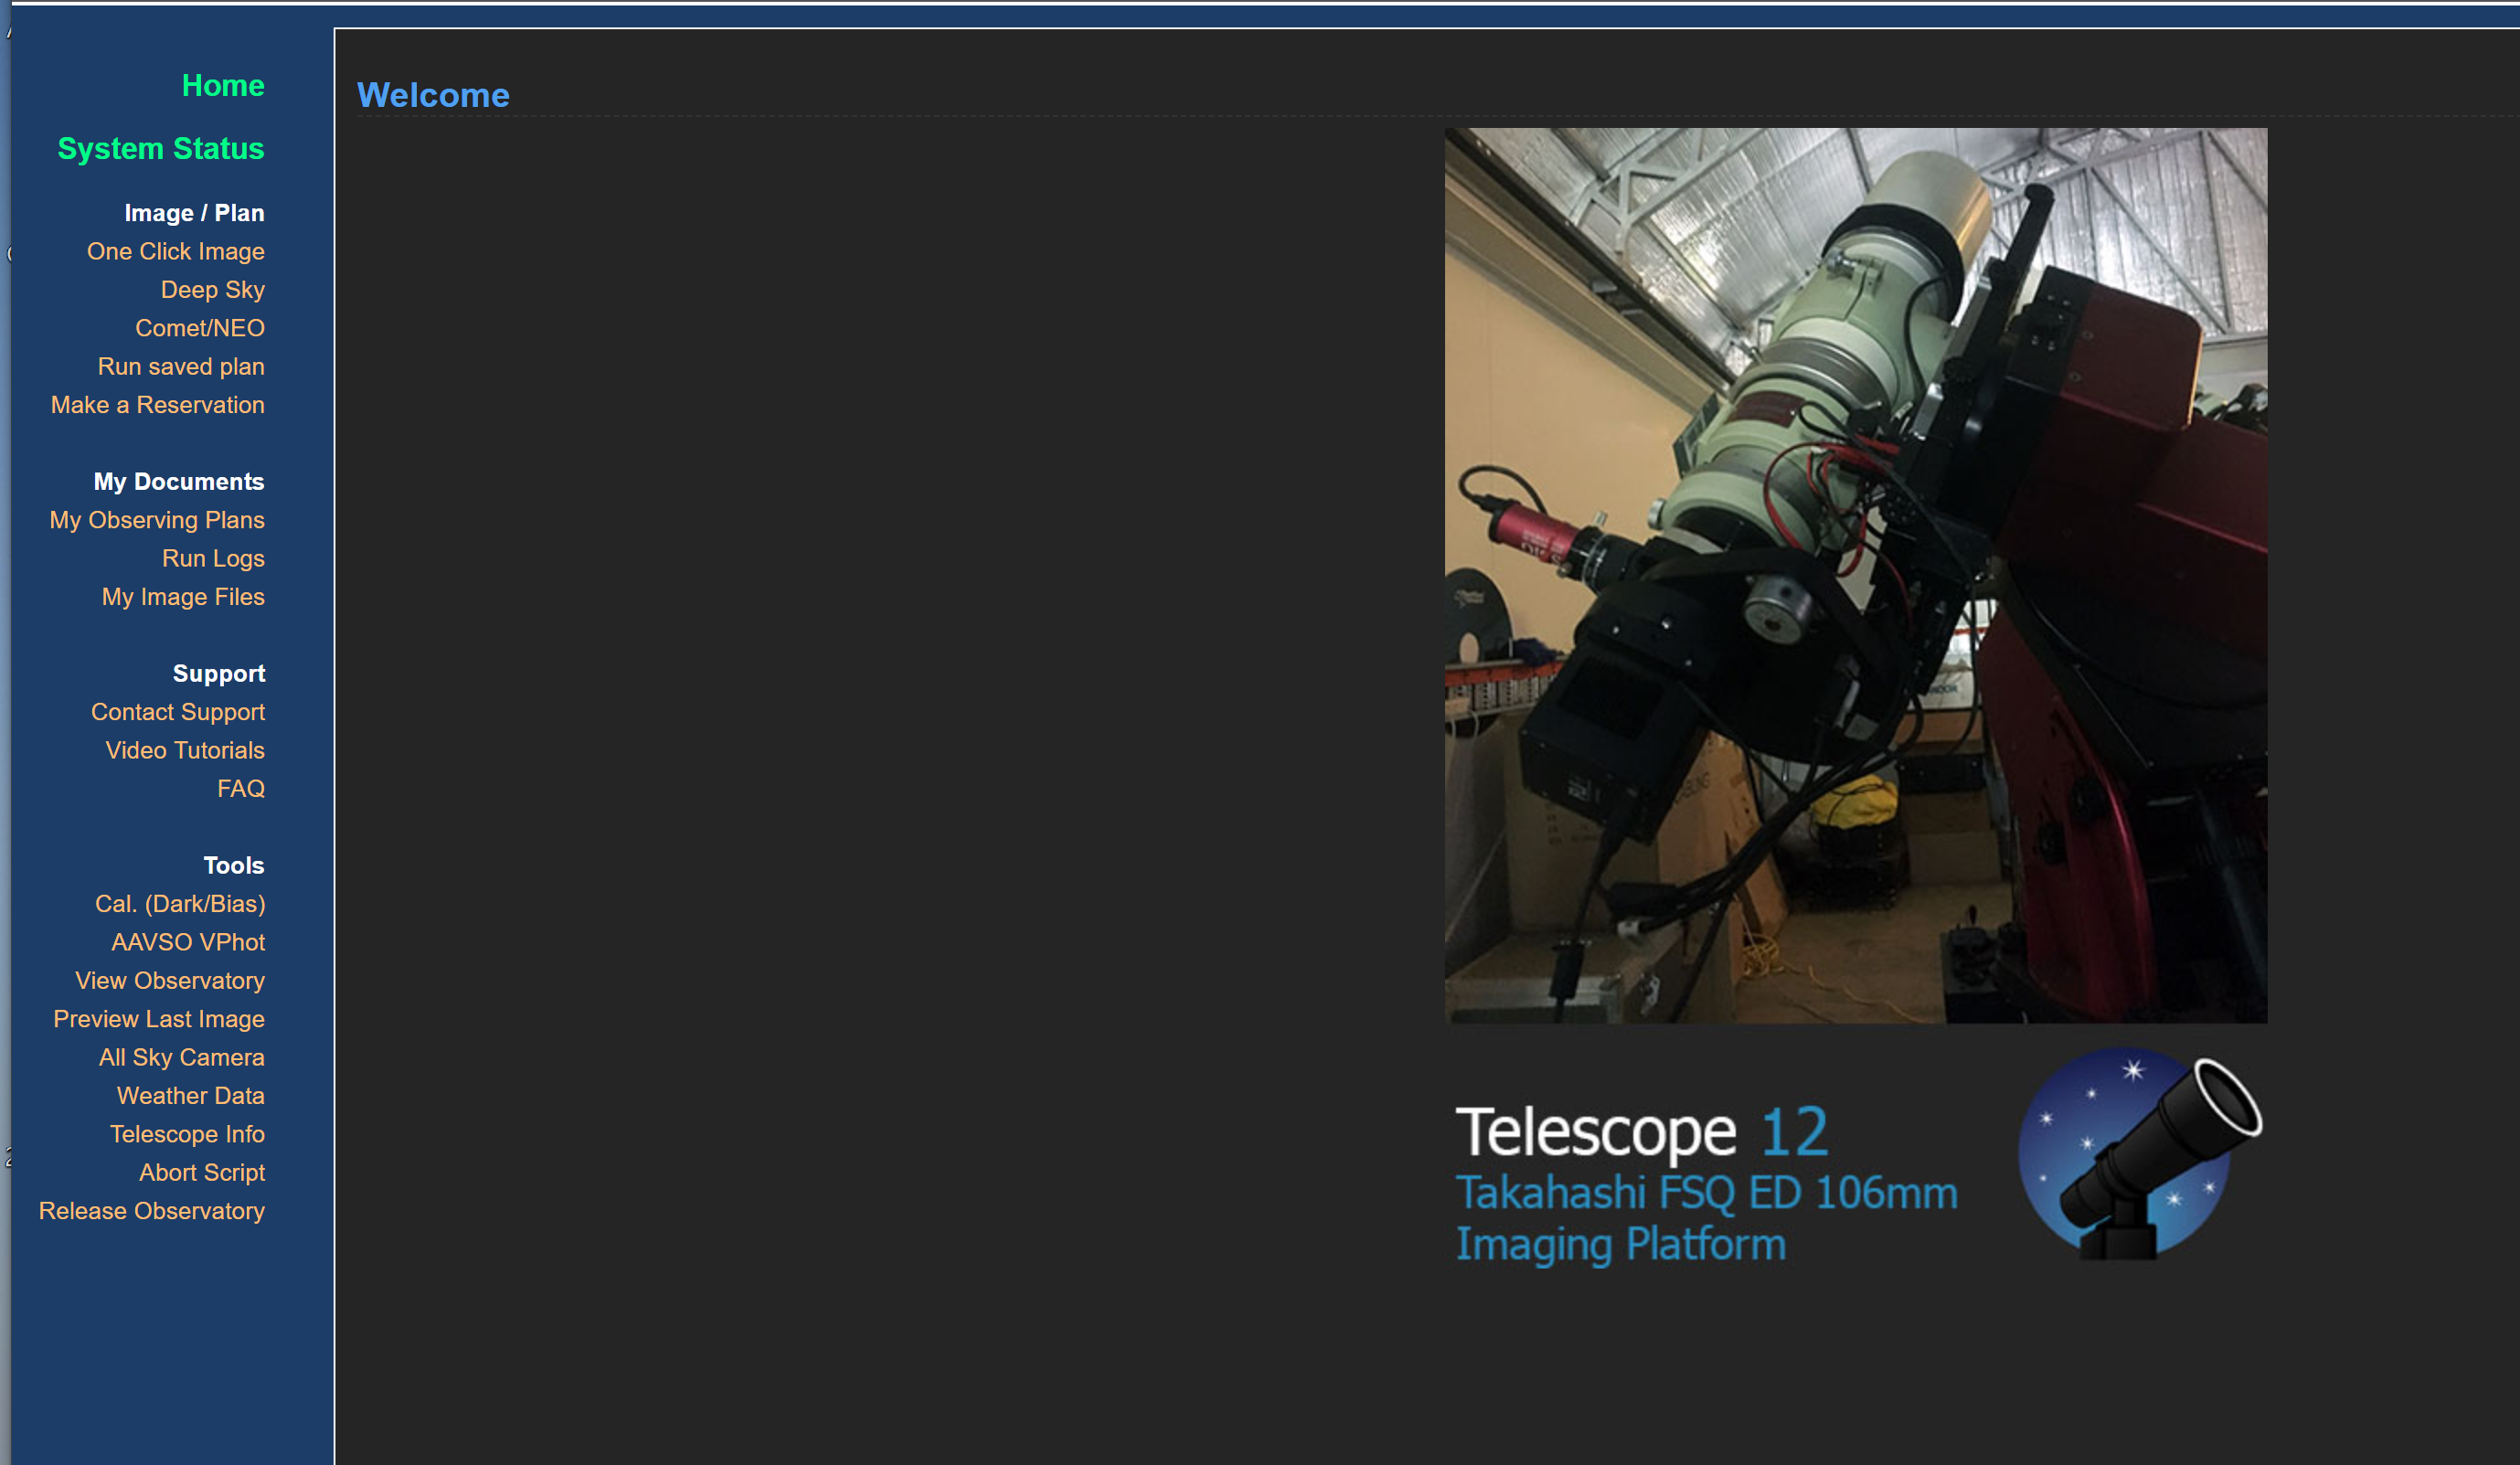 Taking a One Click Image : iTelescope Net Support